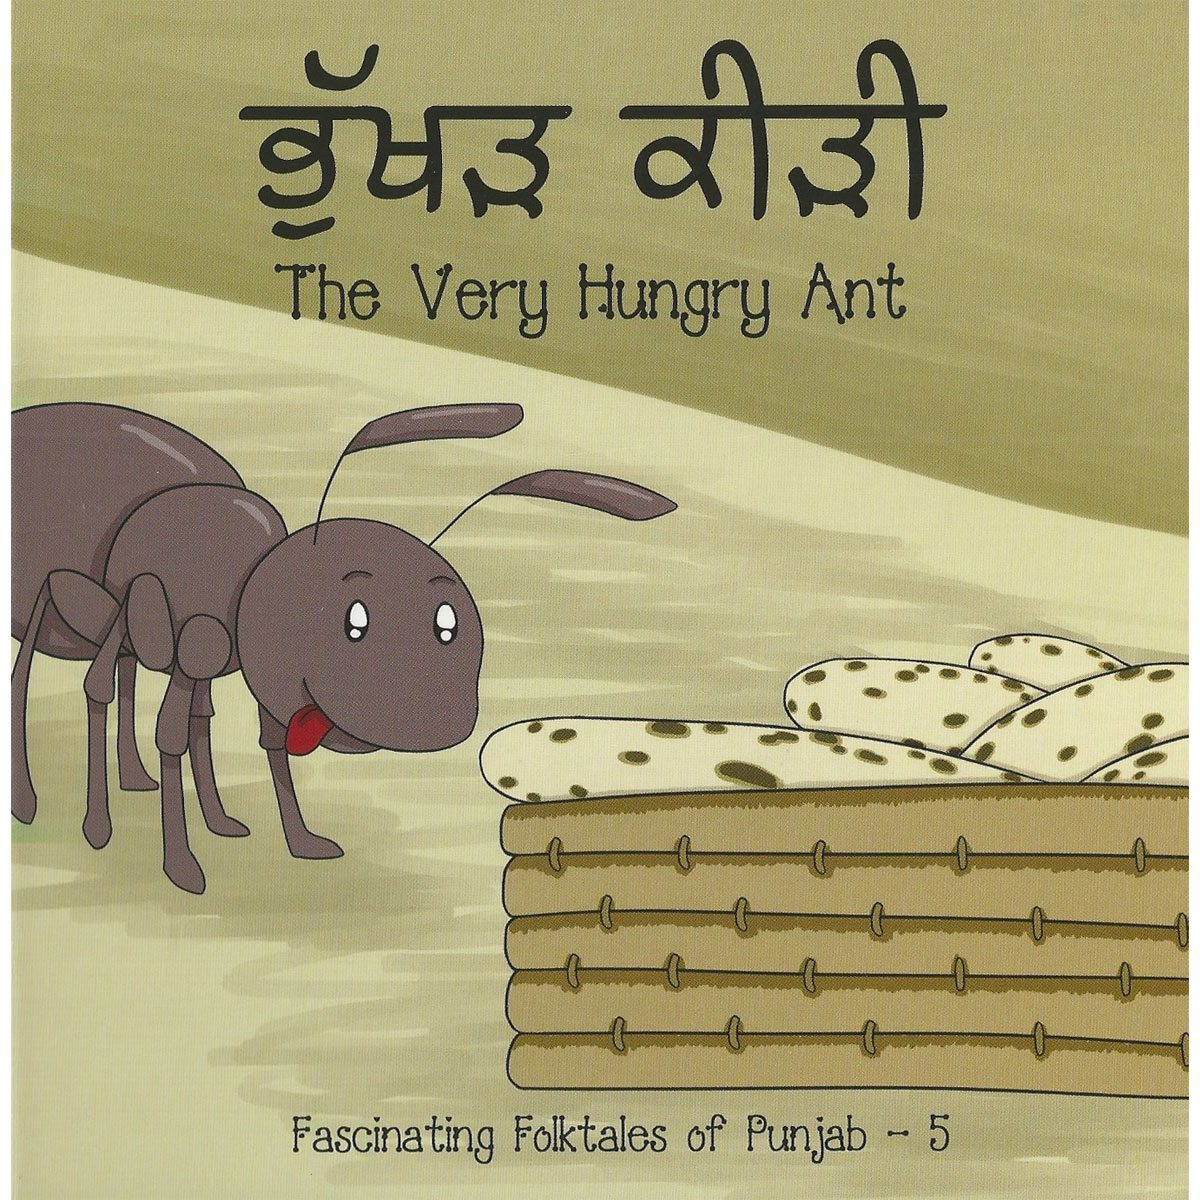 The Very Hungry Ant